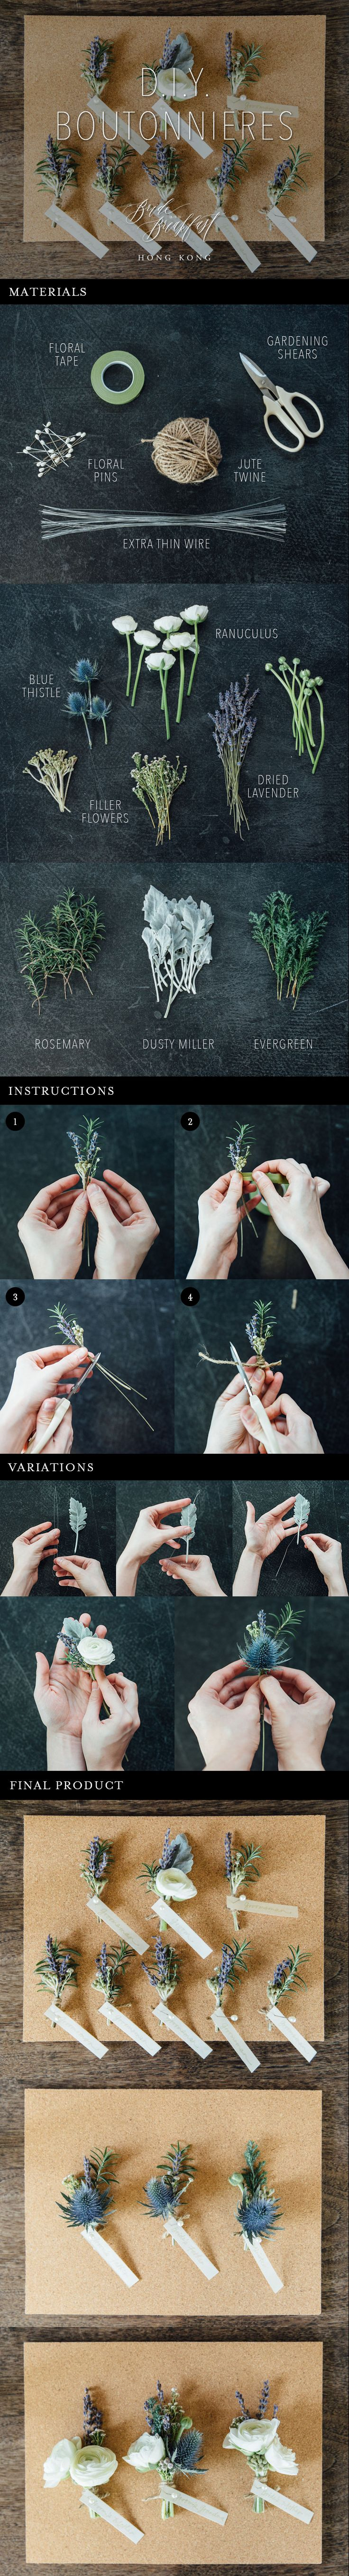 Easy DIY Boutonniere Tutorial                                                                                                                                                      More